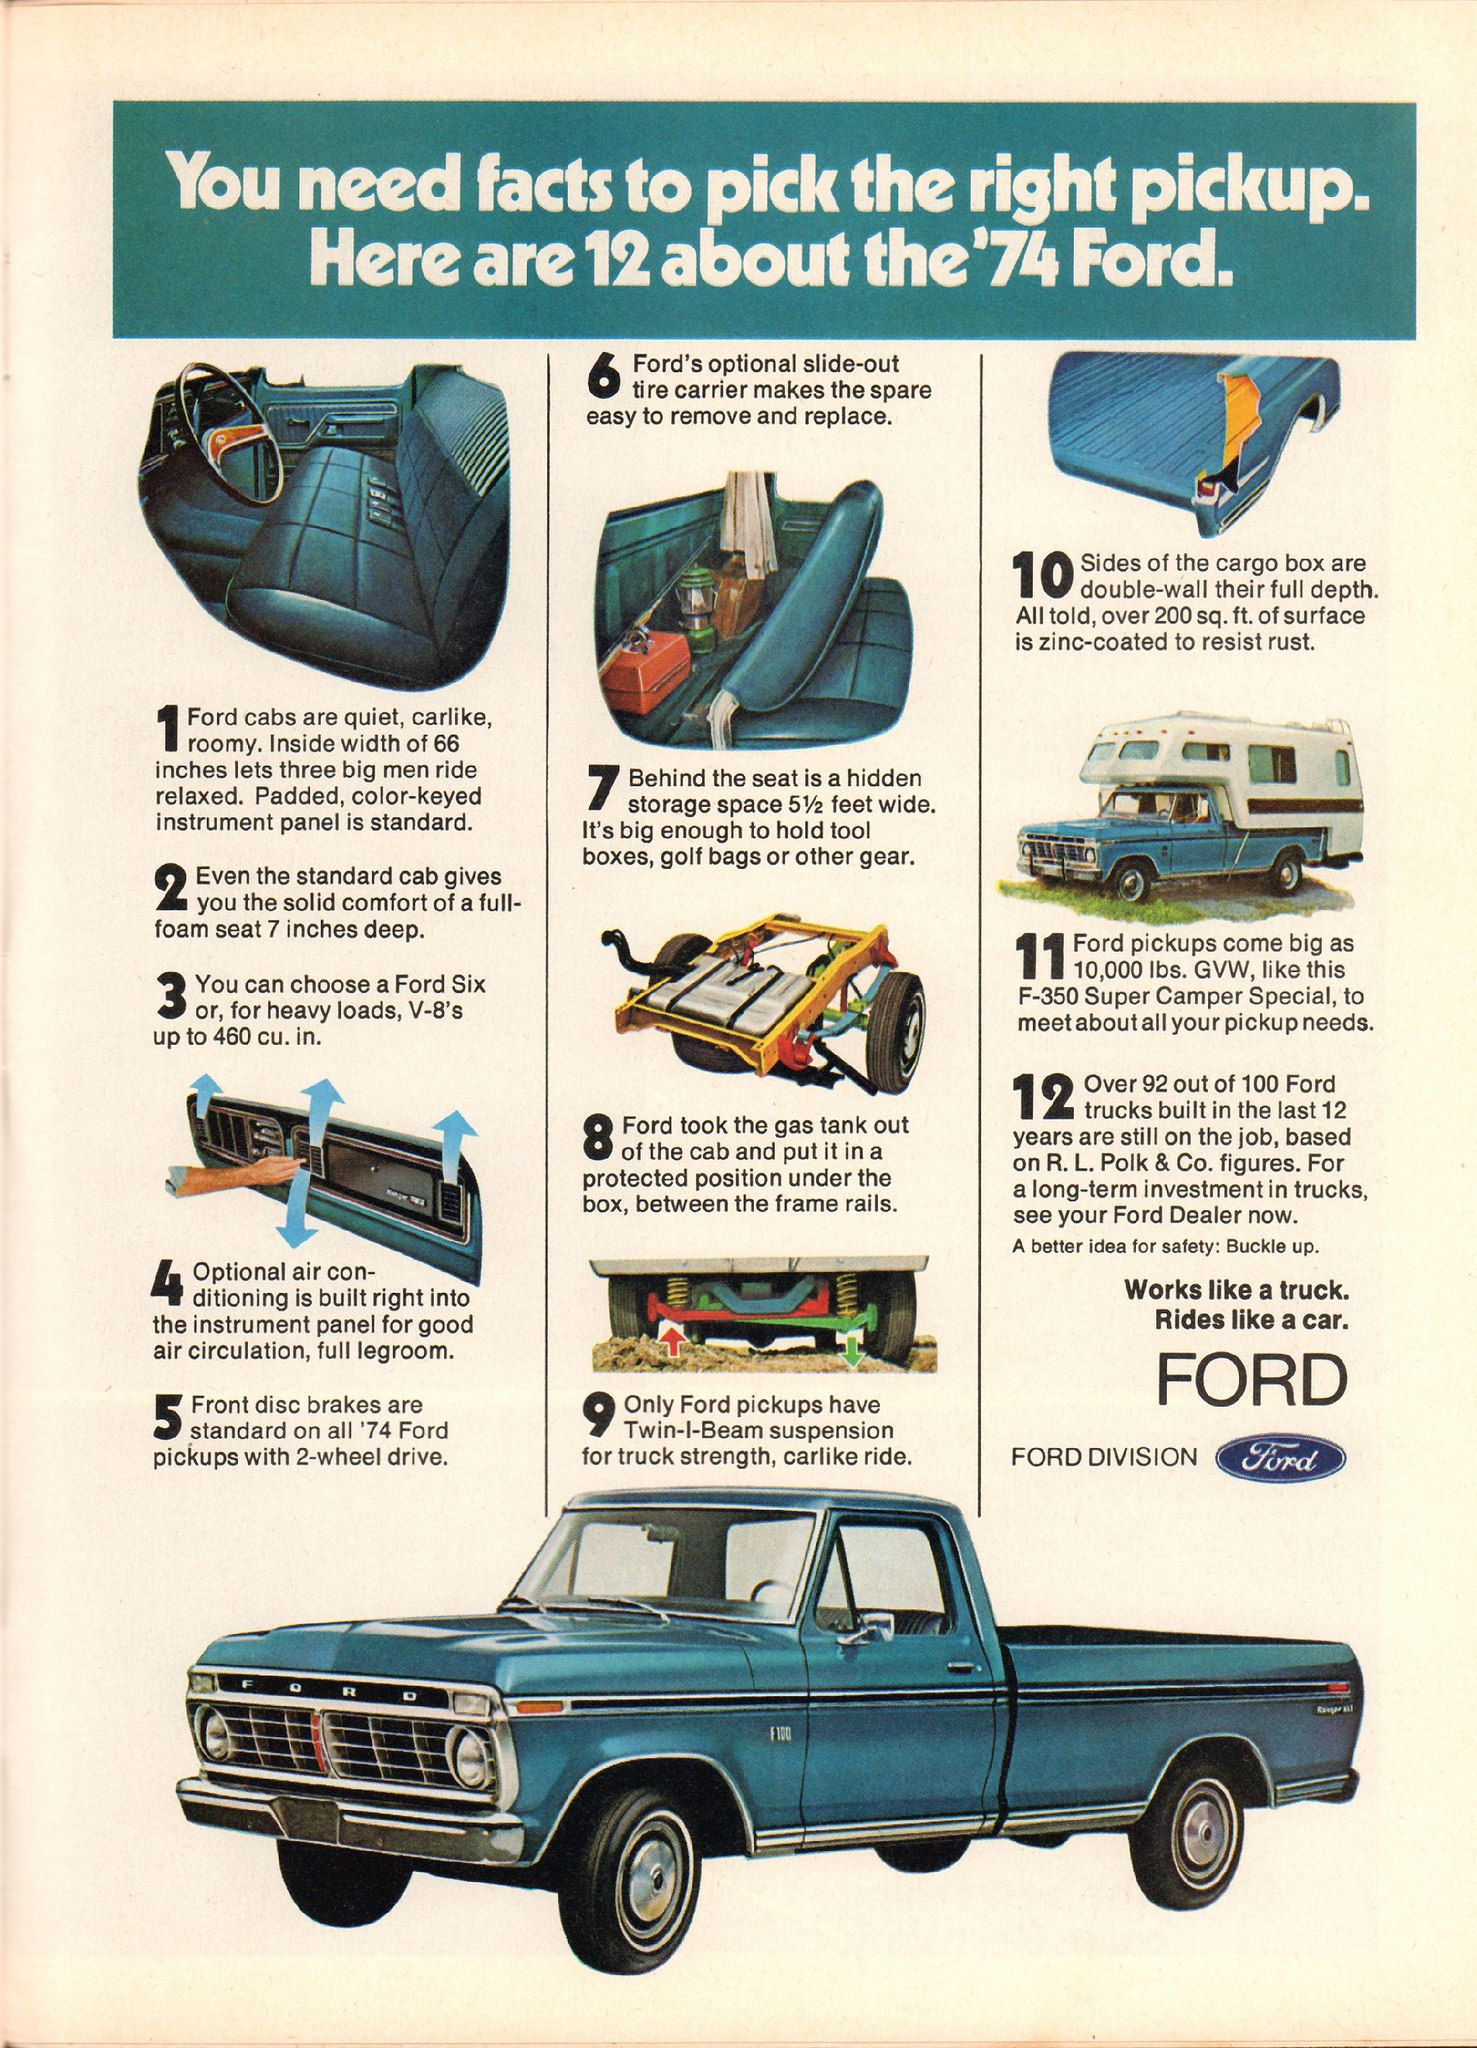 1974 Ford Pickup Truck Advertisement Motor Trend March 1955 F100 Spare Tire Carrier Https Flickr P 26ye4un